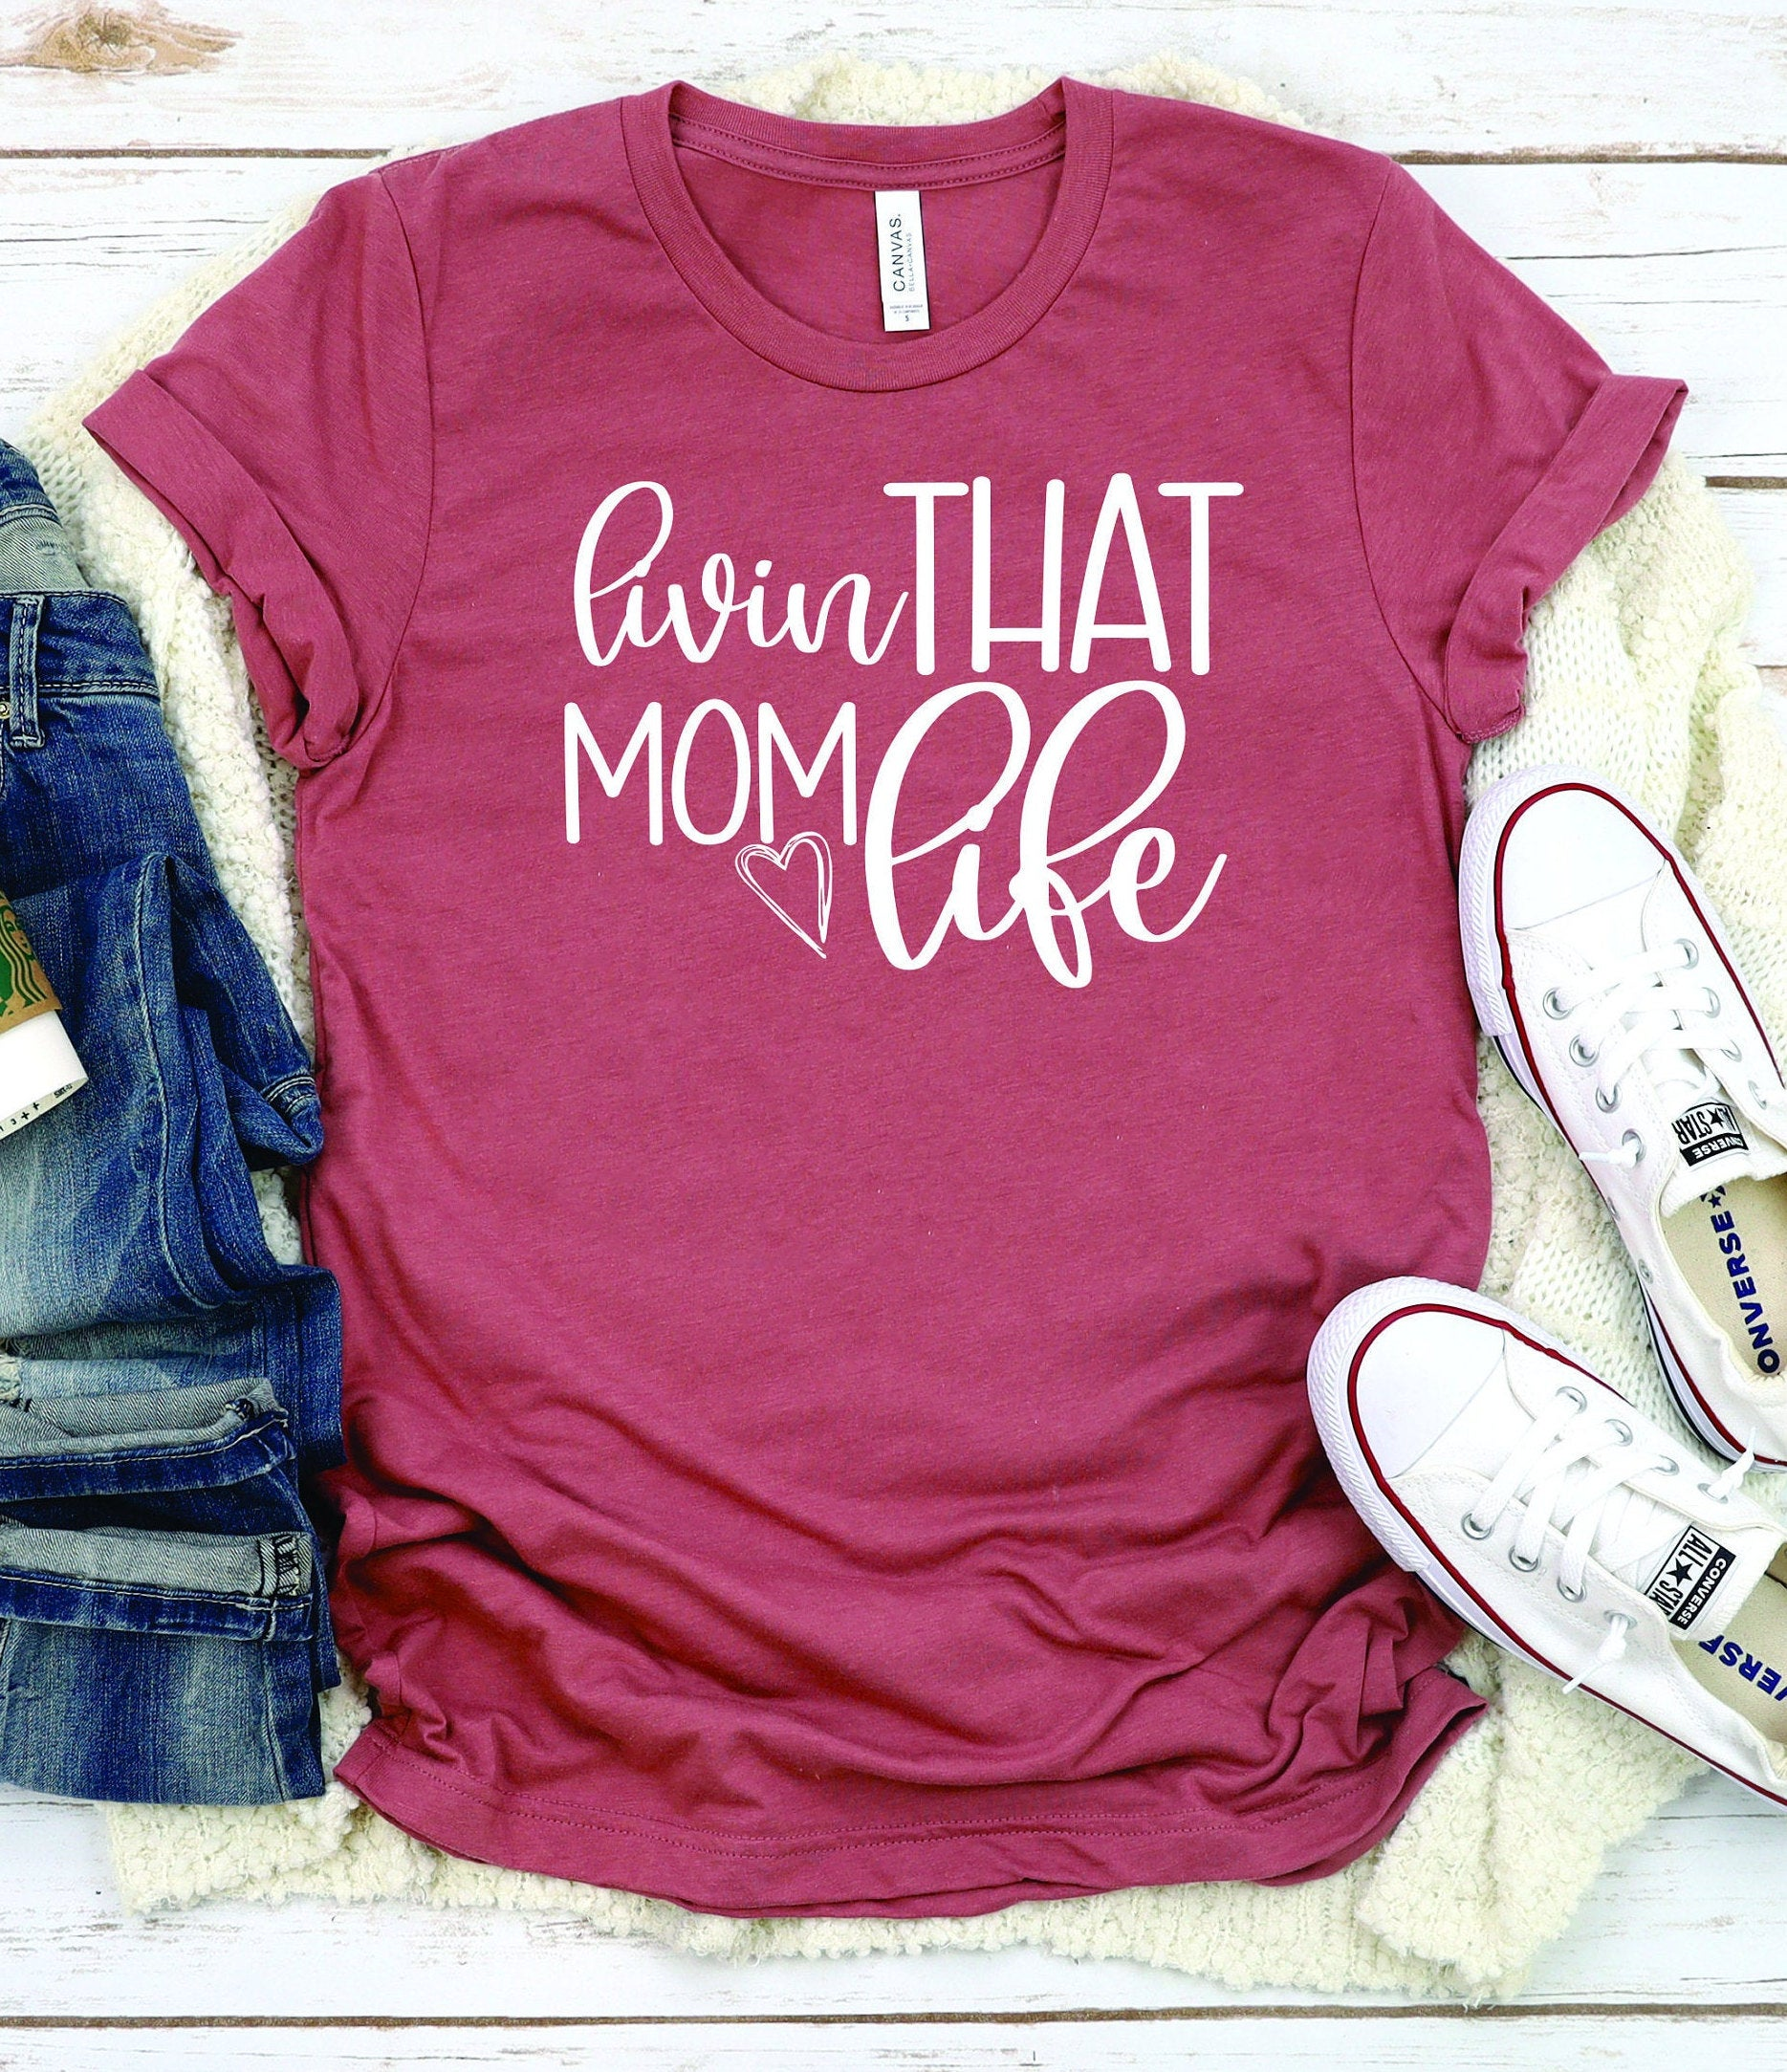 Livin-that-mom-life-svg-mothers-day-svg-mom-life-svg-mom-quote-svg-motherhood-svg-mothers-day-svg-designs-cricut-cut-files-60514927